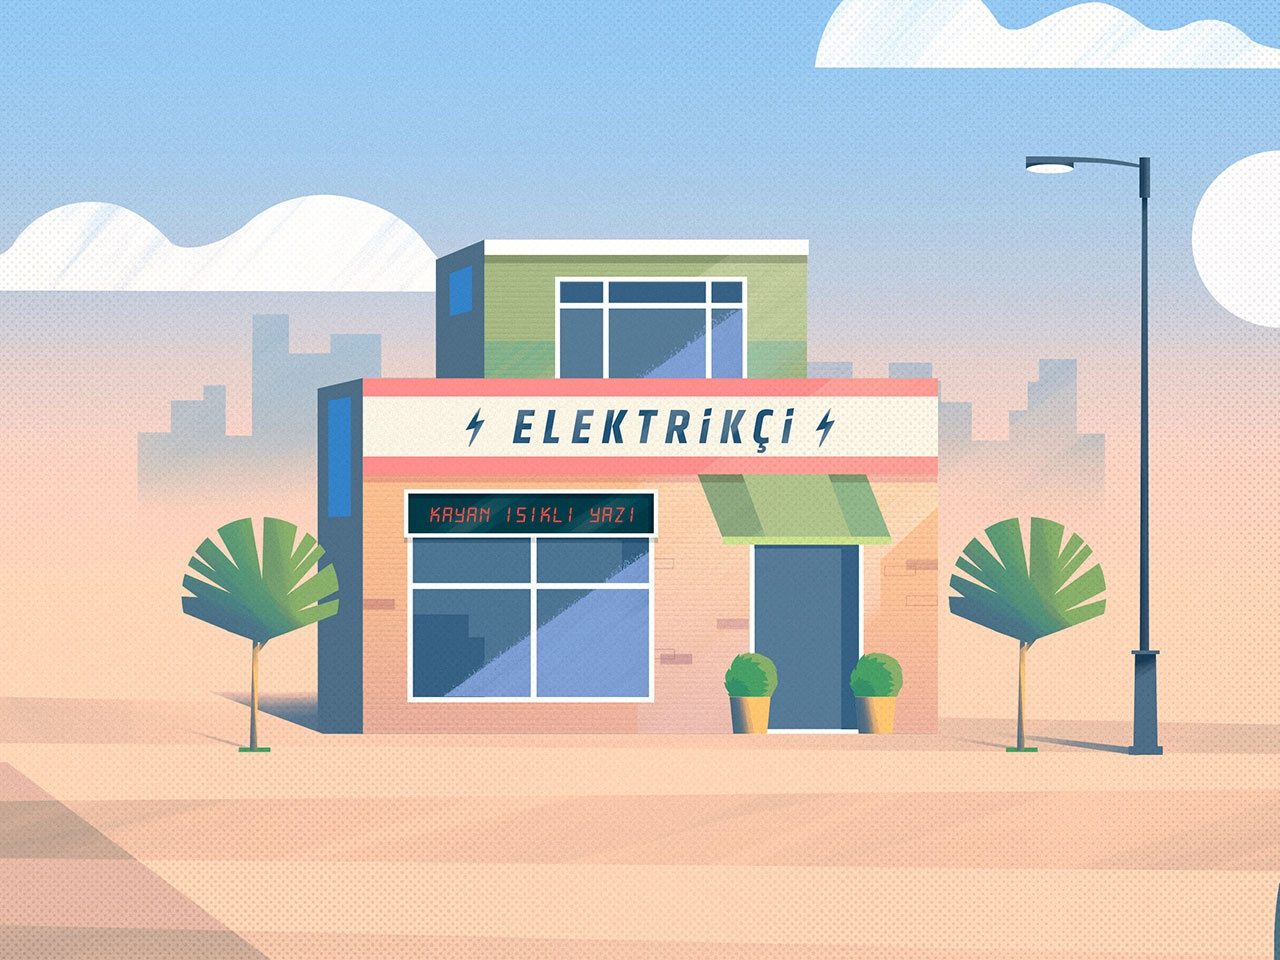 Electrician graphic dribbble drawing concept design character building shop brush art color illustration vector